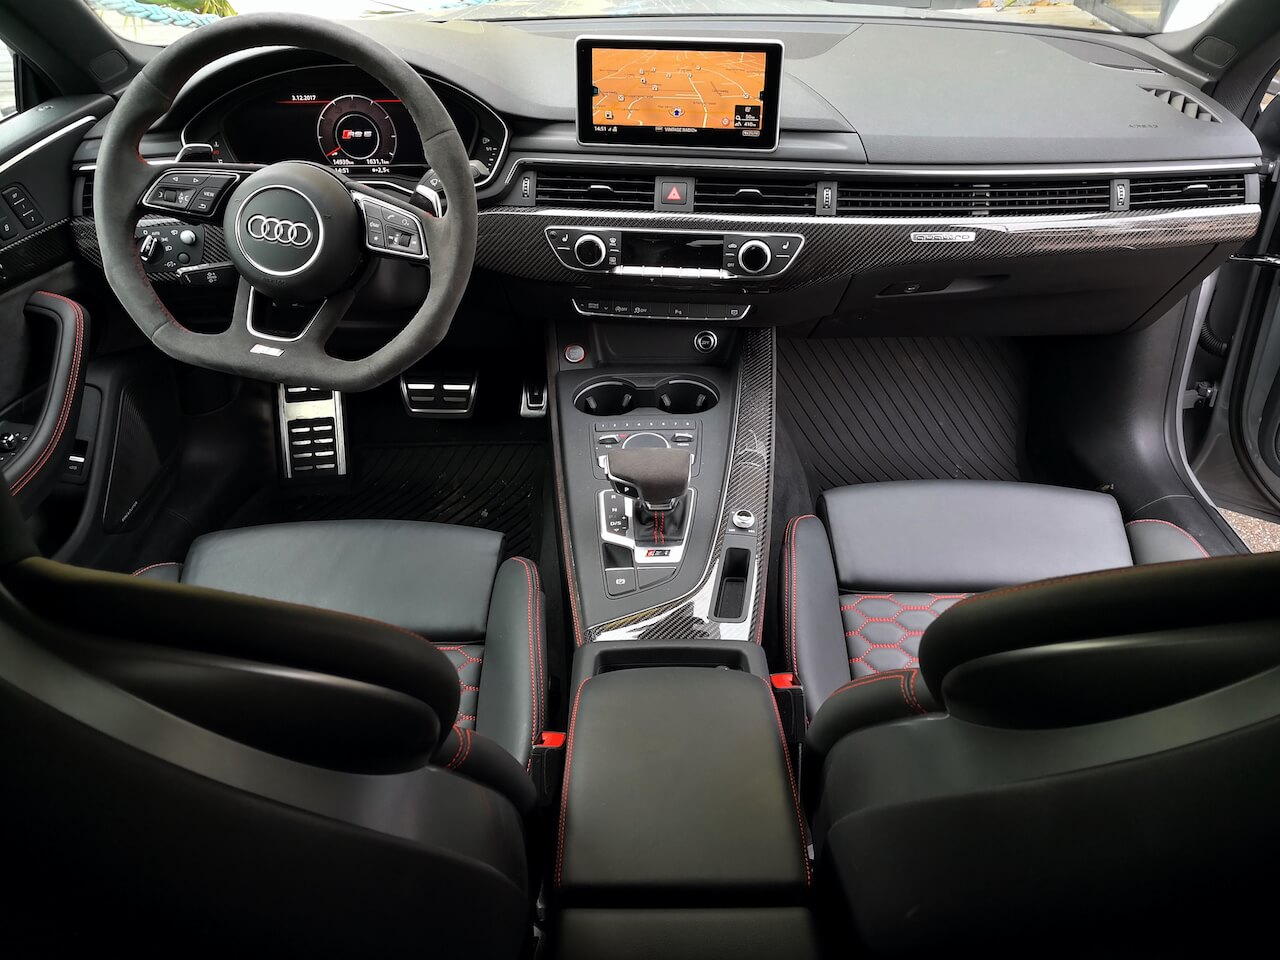 Audi RS5 Interior - A Gentleman\'s World